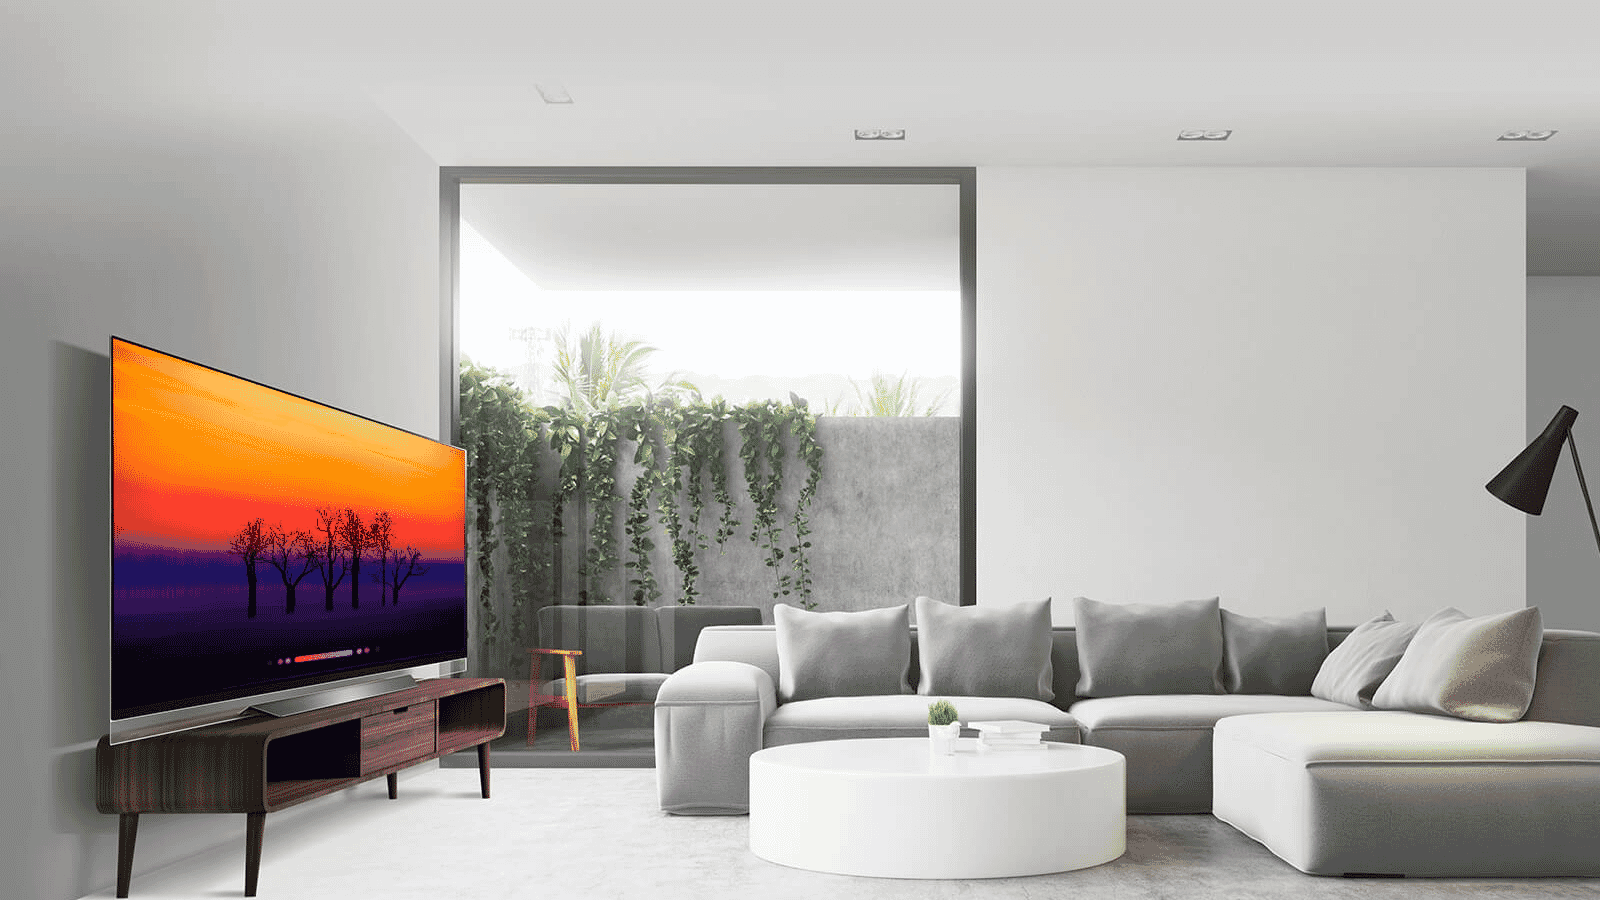 The new LG Super UHD 4K Smart TV is designed to give you the ultimate cinematic TV experience. Shop now at The Good Guys